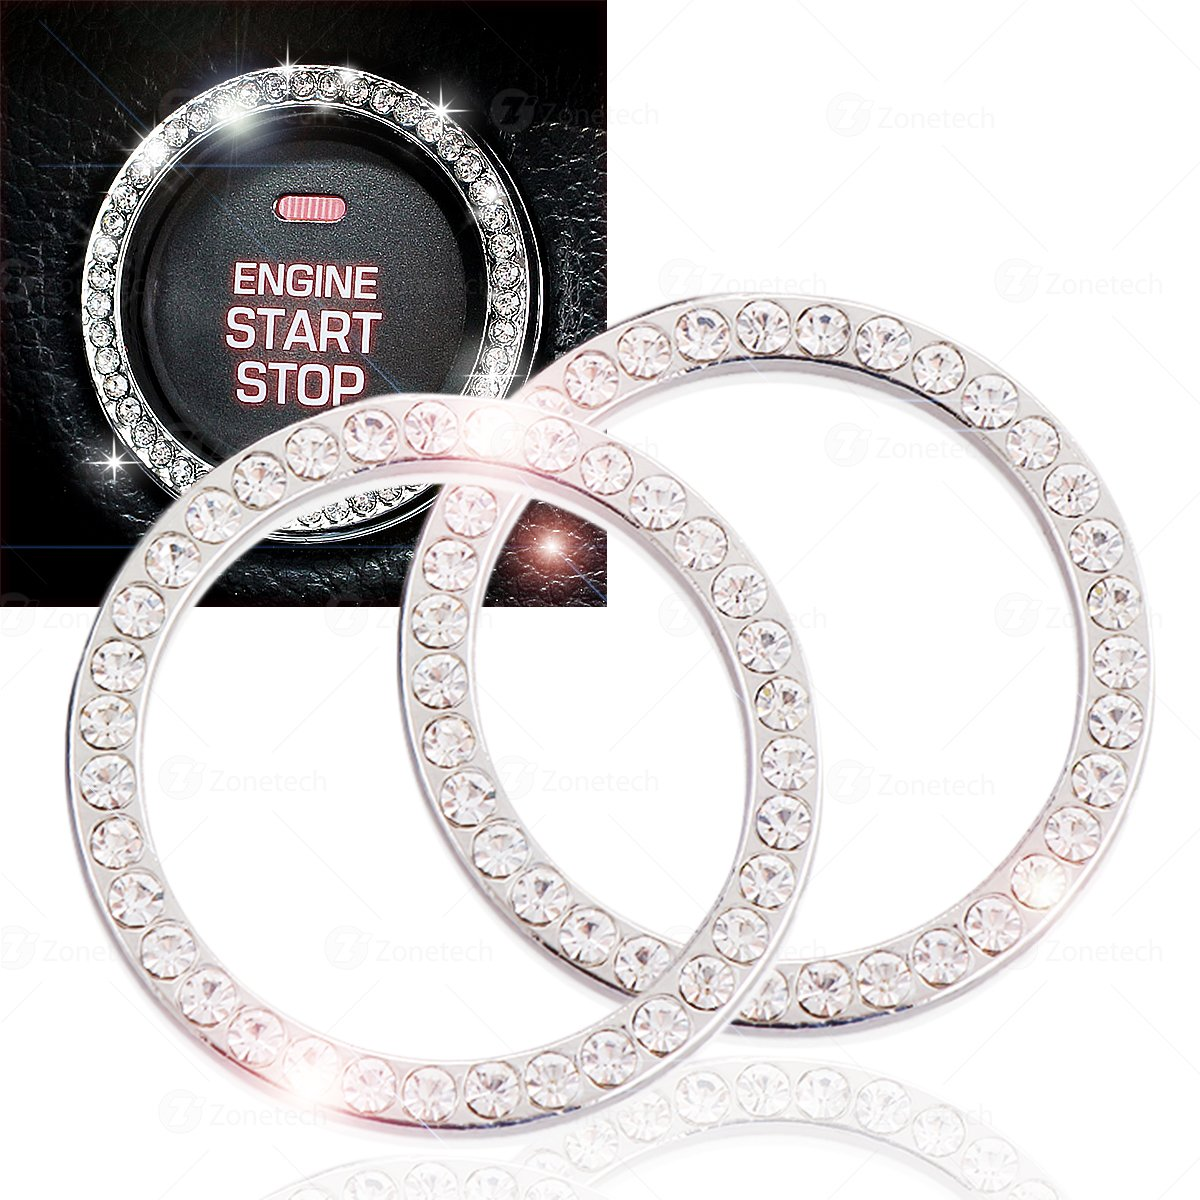 Chrystal Bling Ring Emblem Sticker Zone Tech Rhinestone Start Engine Ignition Button Car Key Knob Interior Bling Push Button Auto Decorative Decal Unique Silver Sparkly Vehicle Rings Woman 2 Pack